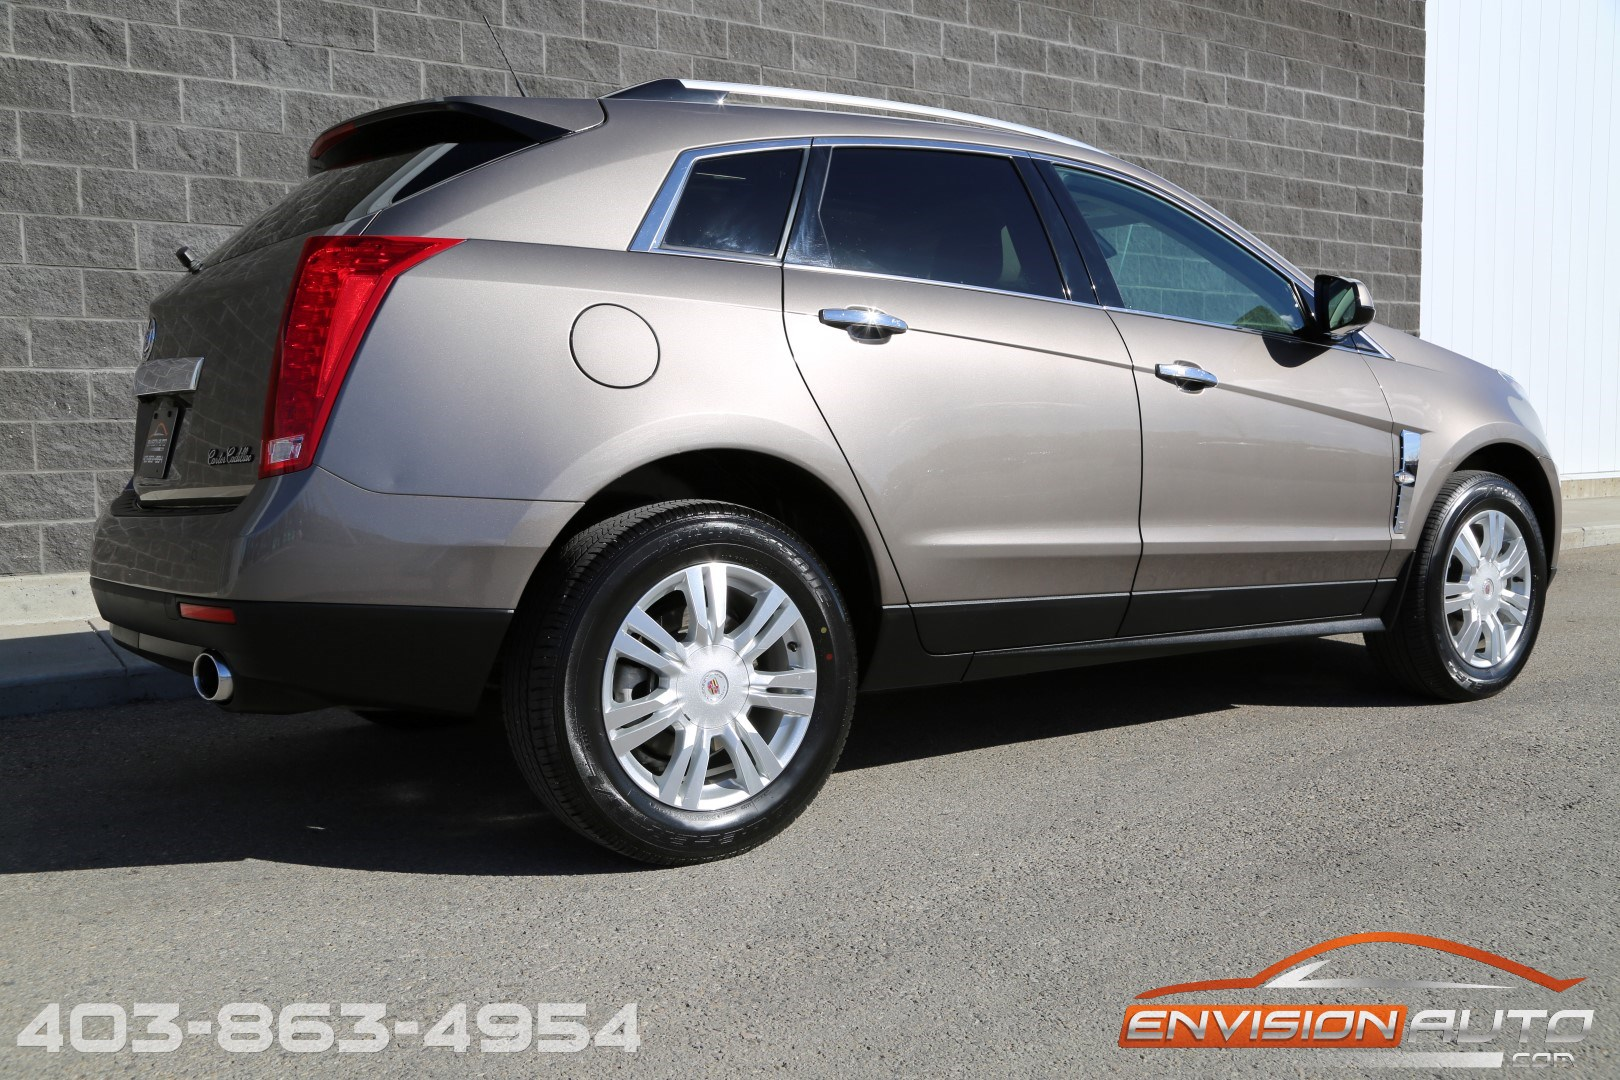 2011 Cadillac SRX4 AWD Luxury Collection Envision Auto